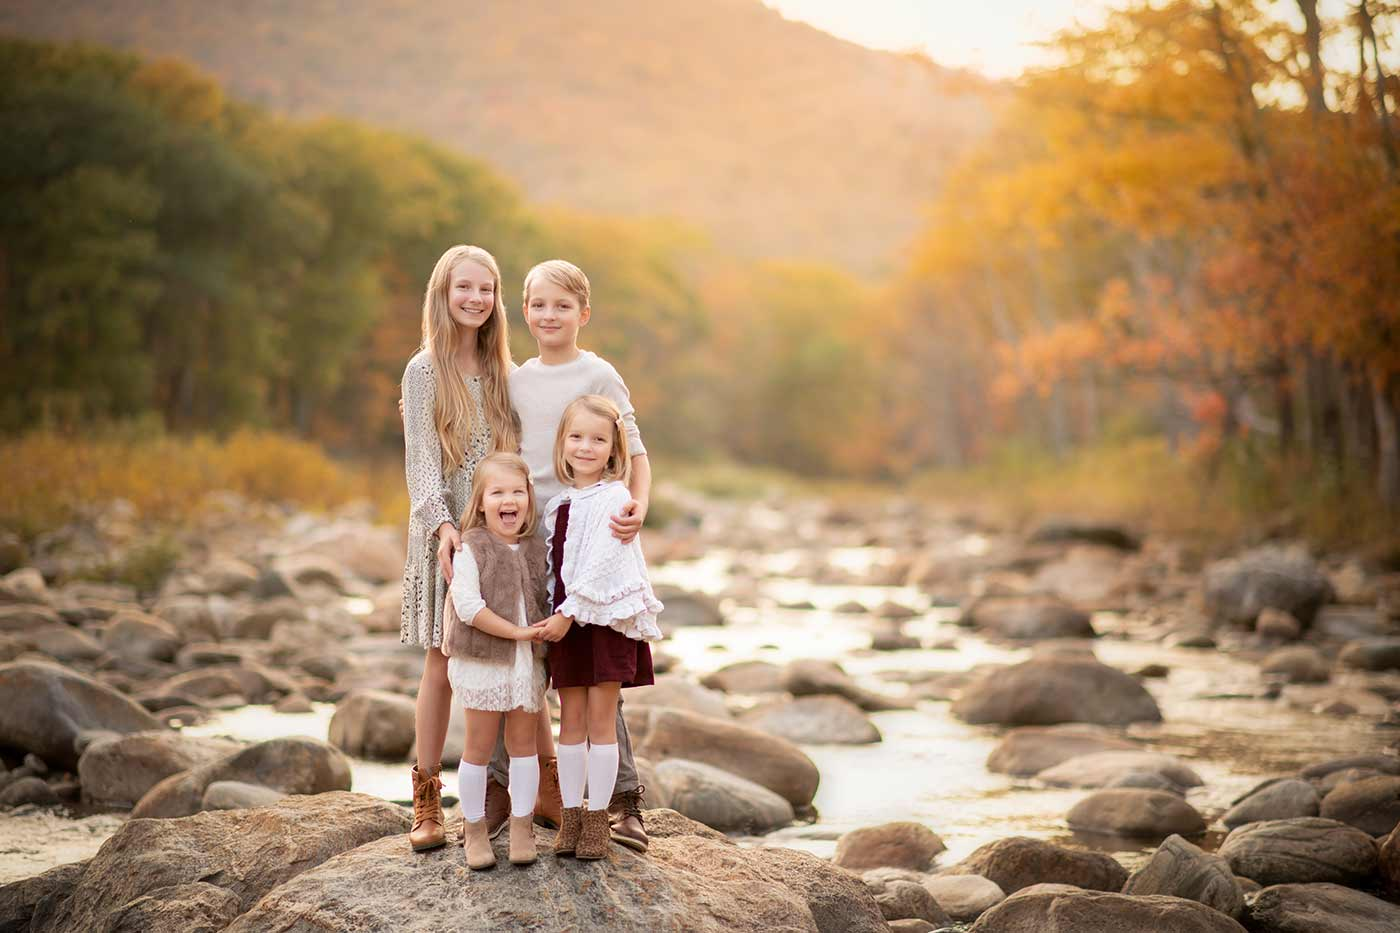 Siblings standing near a river during autumn sunset